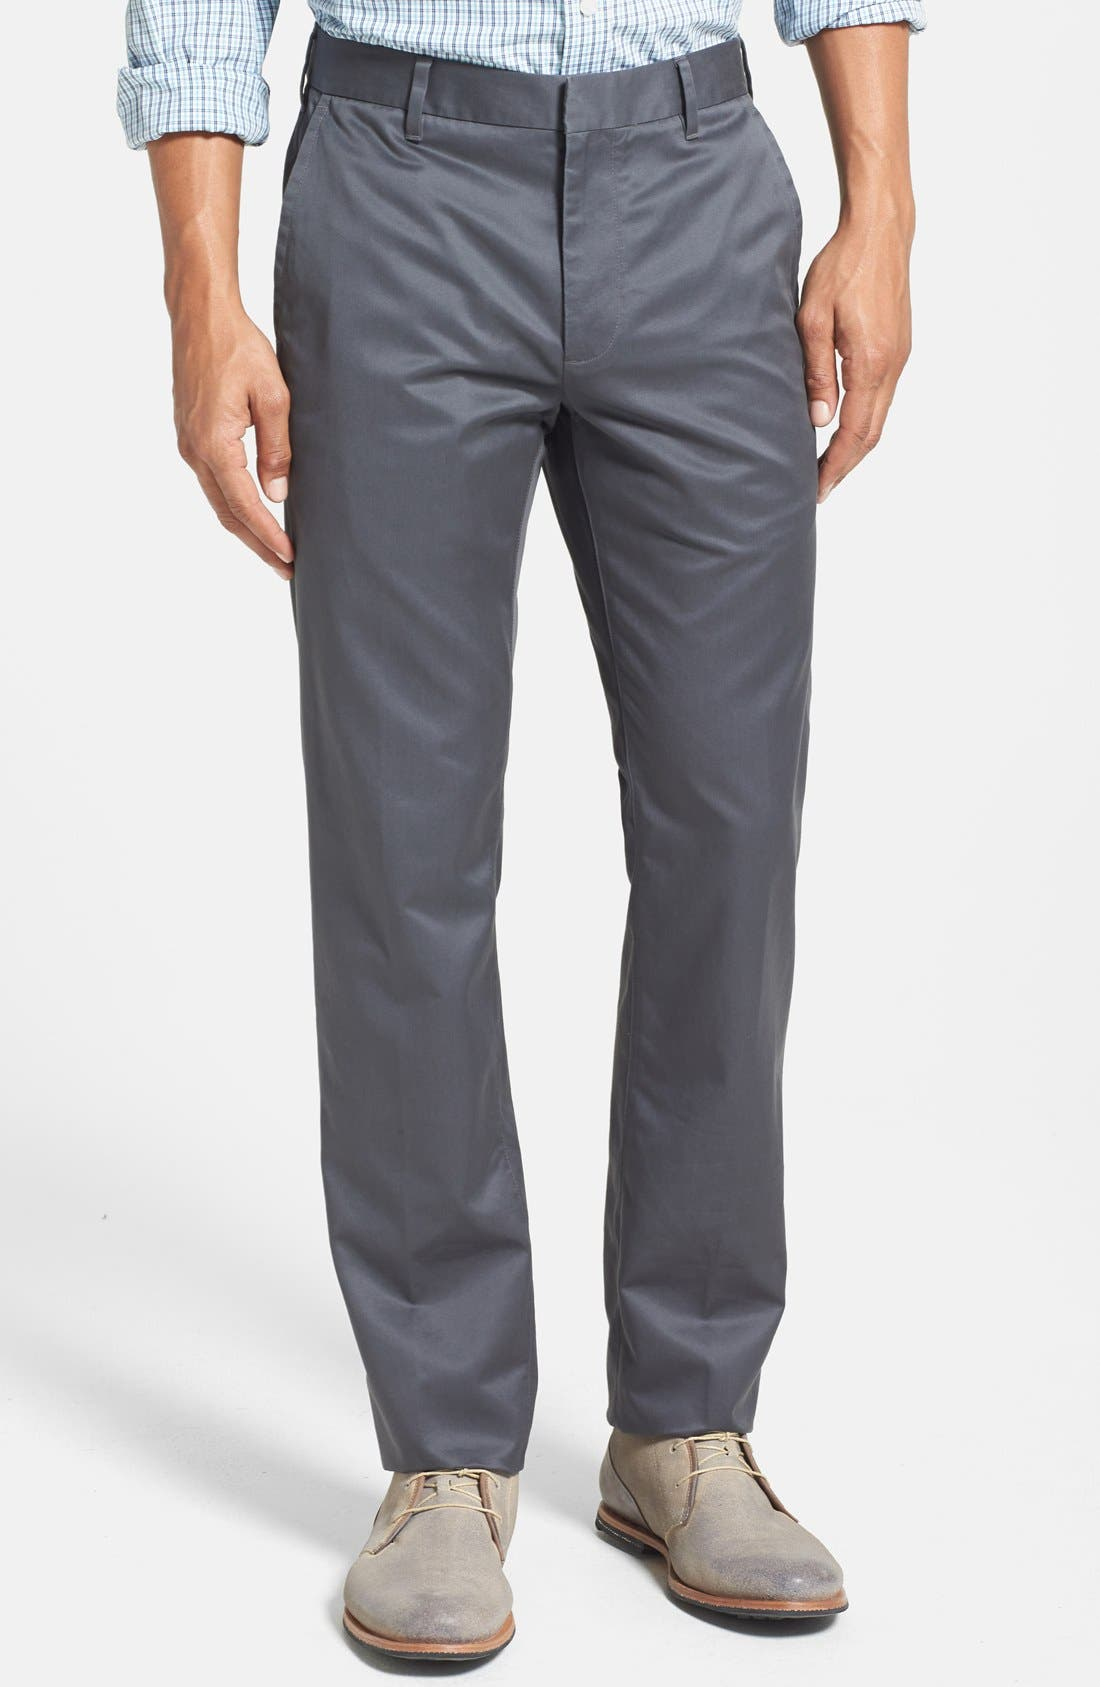 Bonobos 'Weekday Warriors' Non-Iron Slim Fit Cotton Chinos